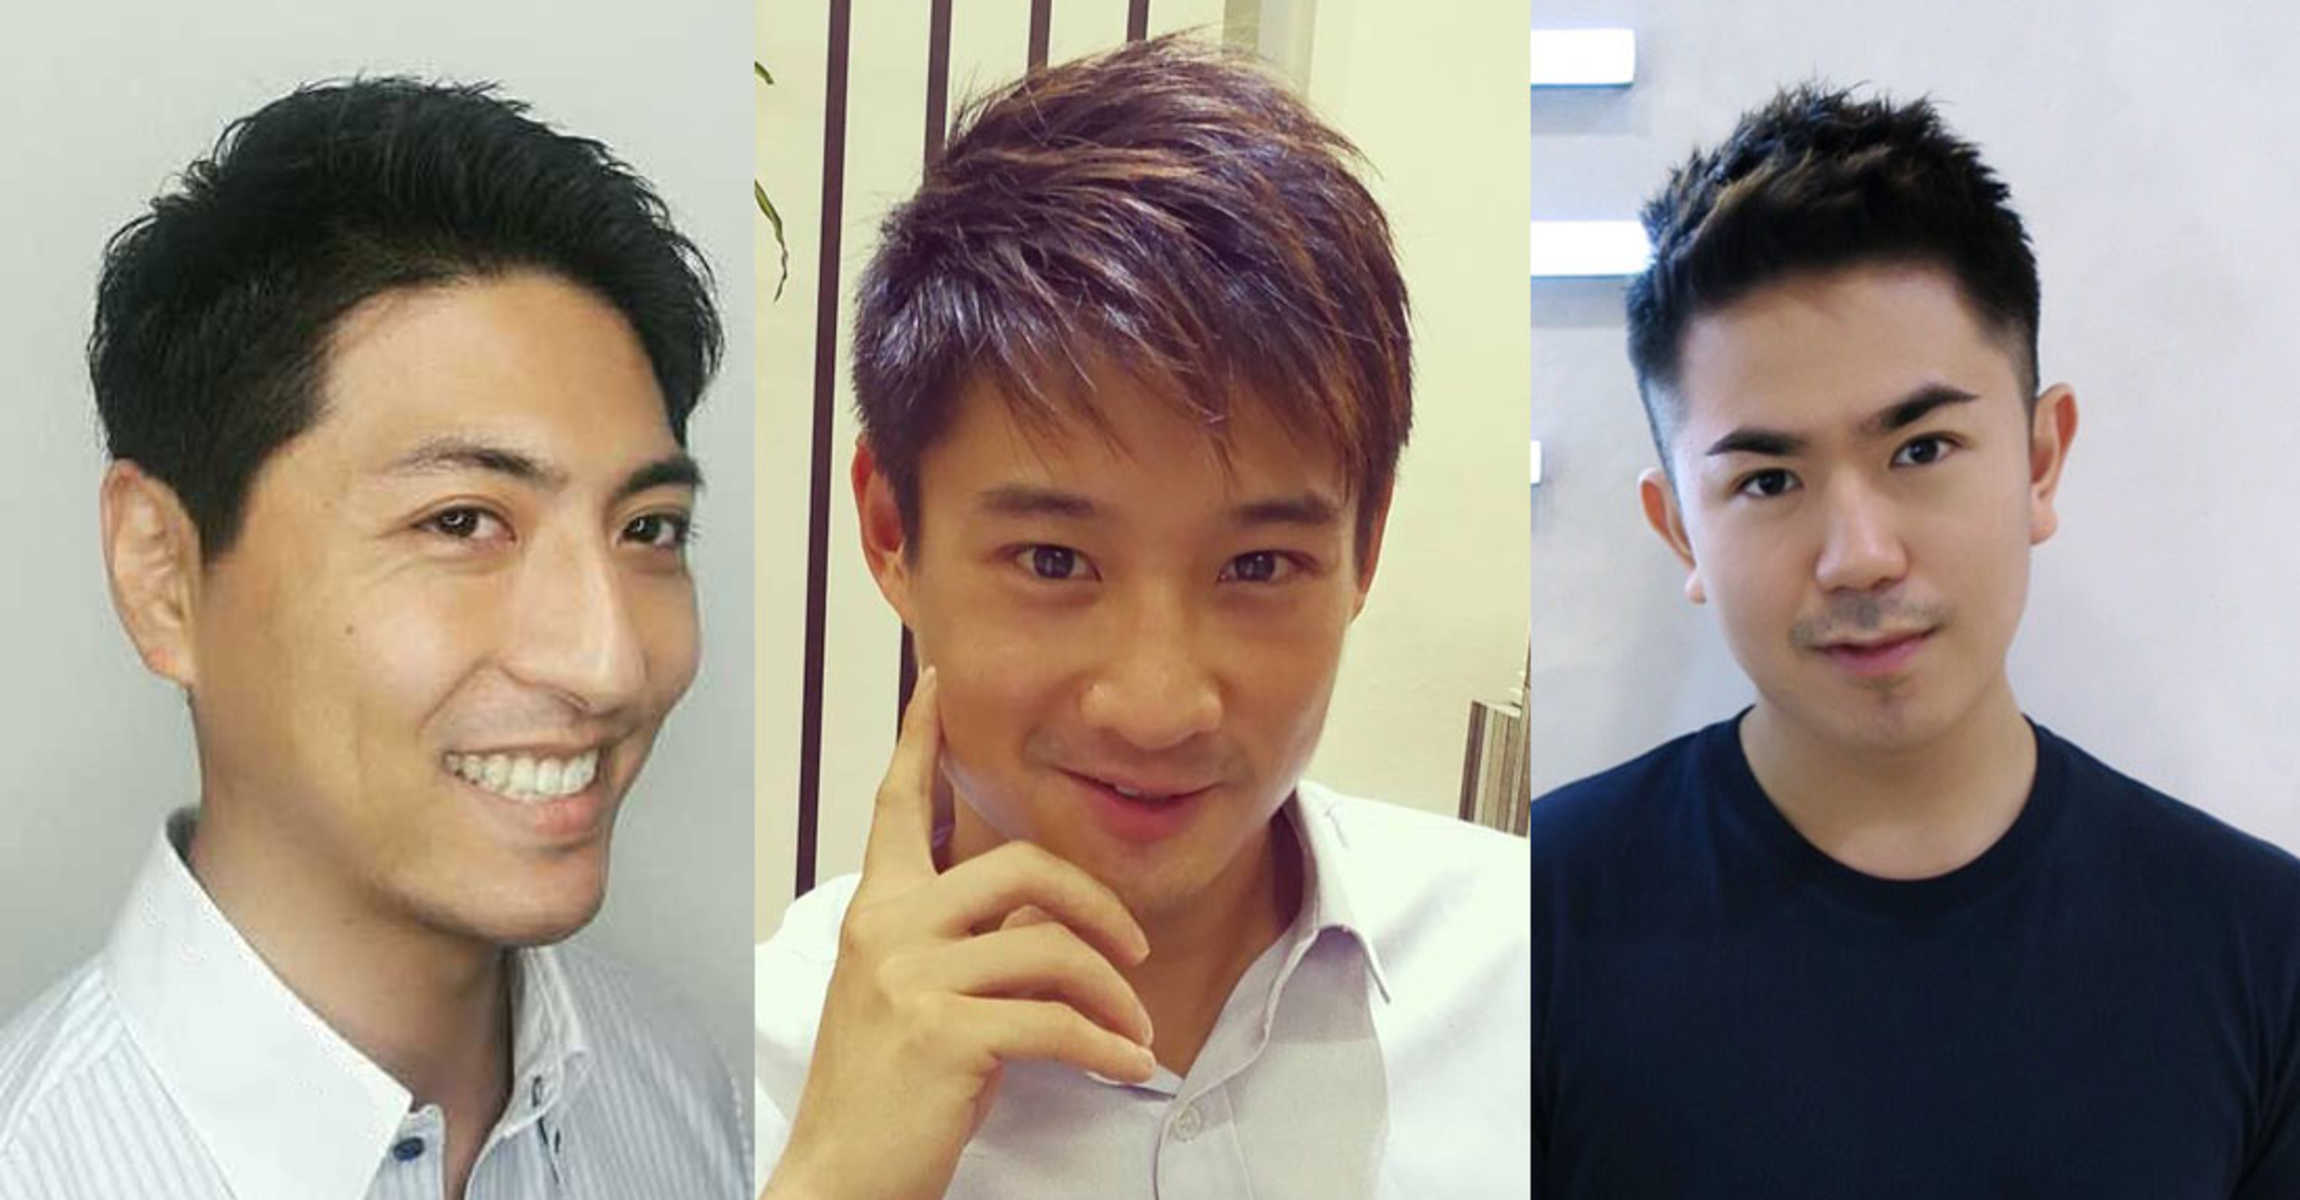 Hairstyles Singaporean Men Can Confidently Pull Off After - Army hairstyle singapore